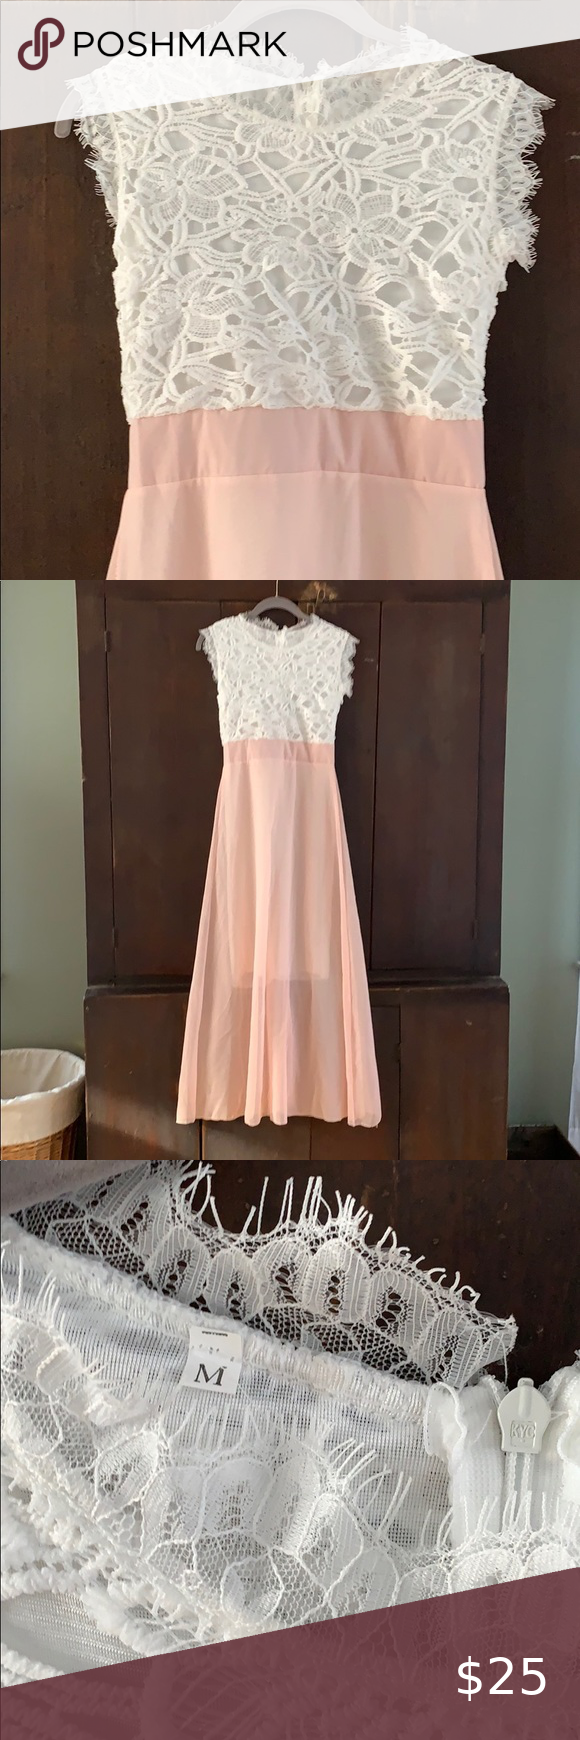 Pink And White Lace Top Dress White Lace Top Dress White Lace Top Lace Top Dress [ 1740 x 580 Pixel ]